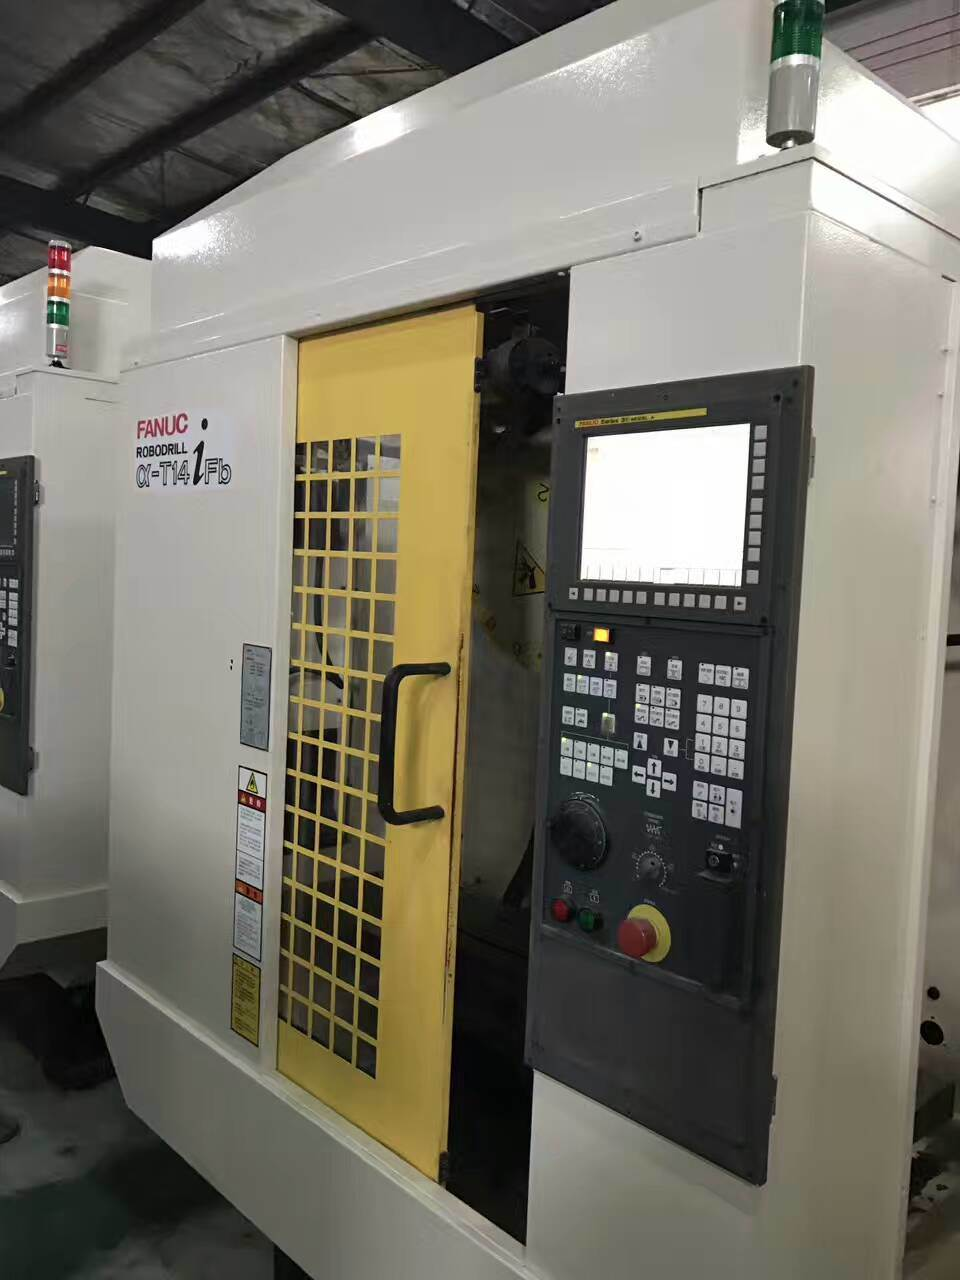 Japanese Made Second Hand CNC Vertical Milling Machine (Fanuc)